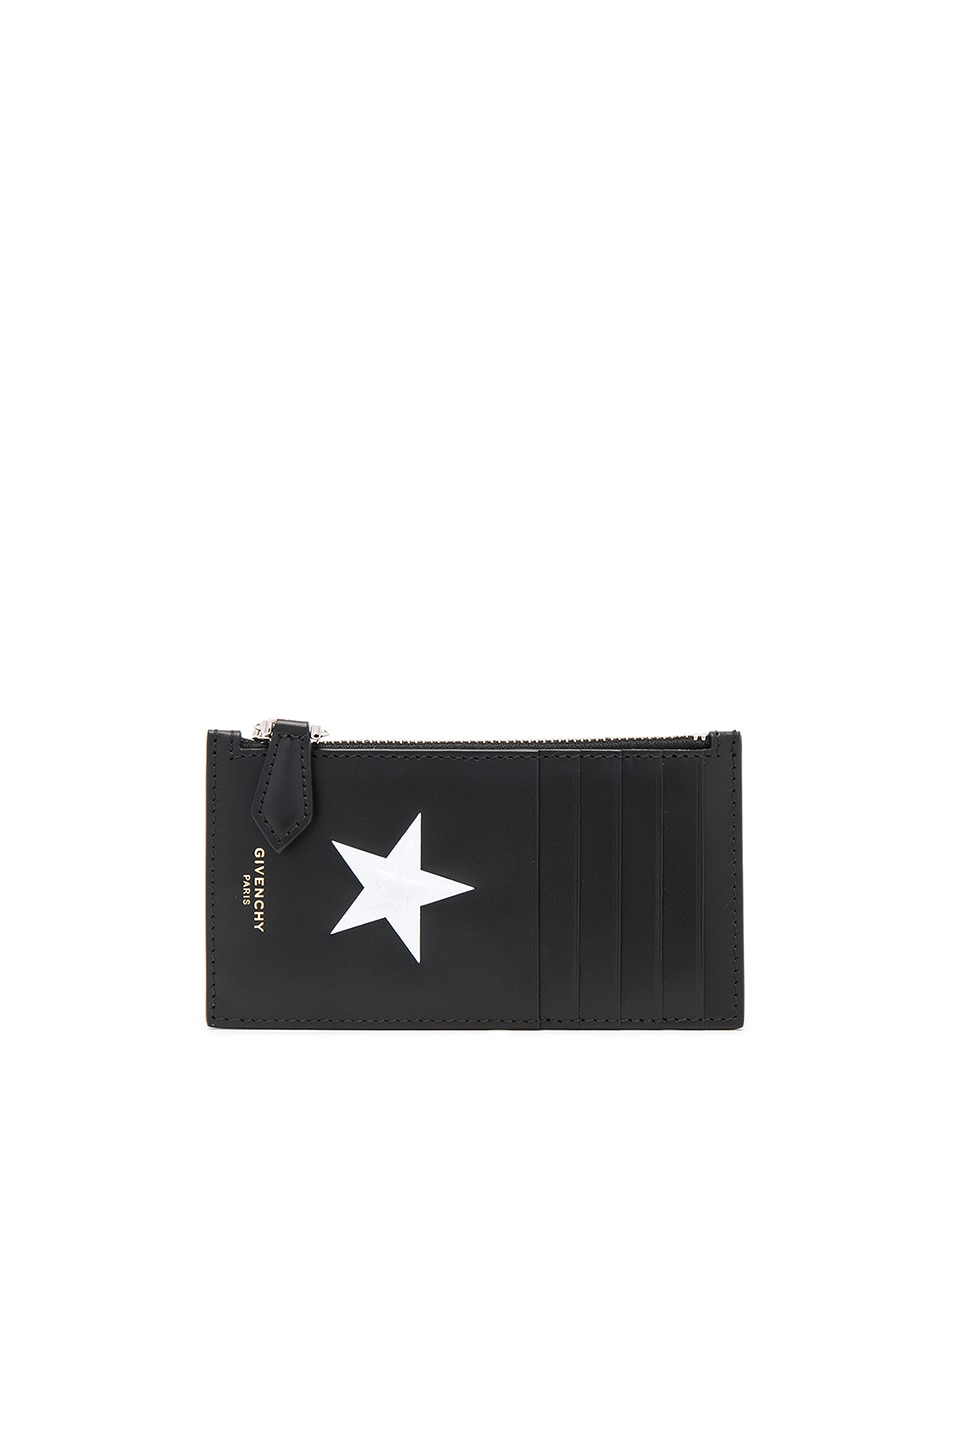 300cac4cecb70 Givenchy Card Wallet - Best Photo Wallet Justiceforkenny.Org